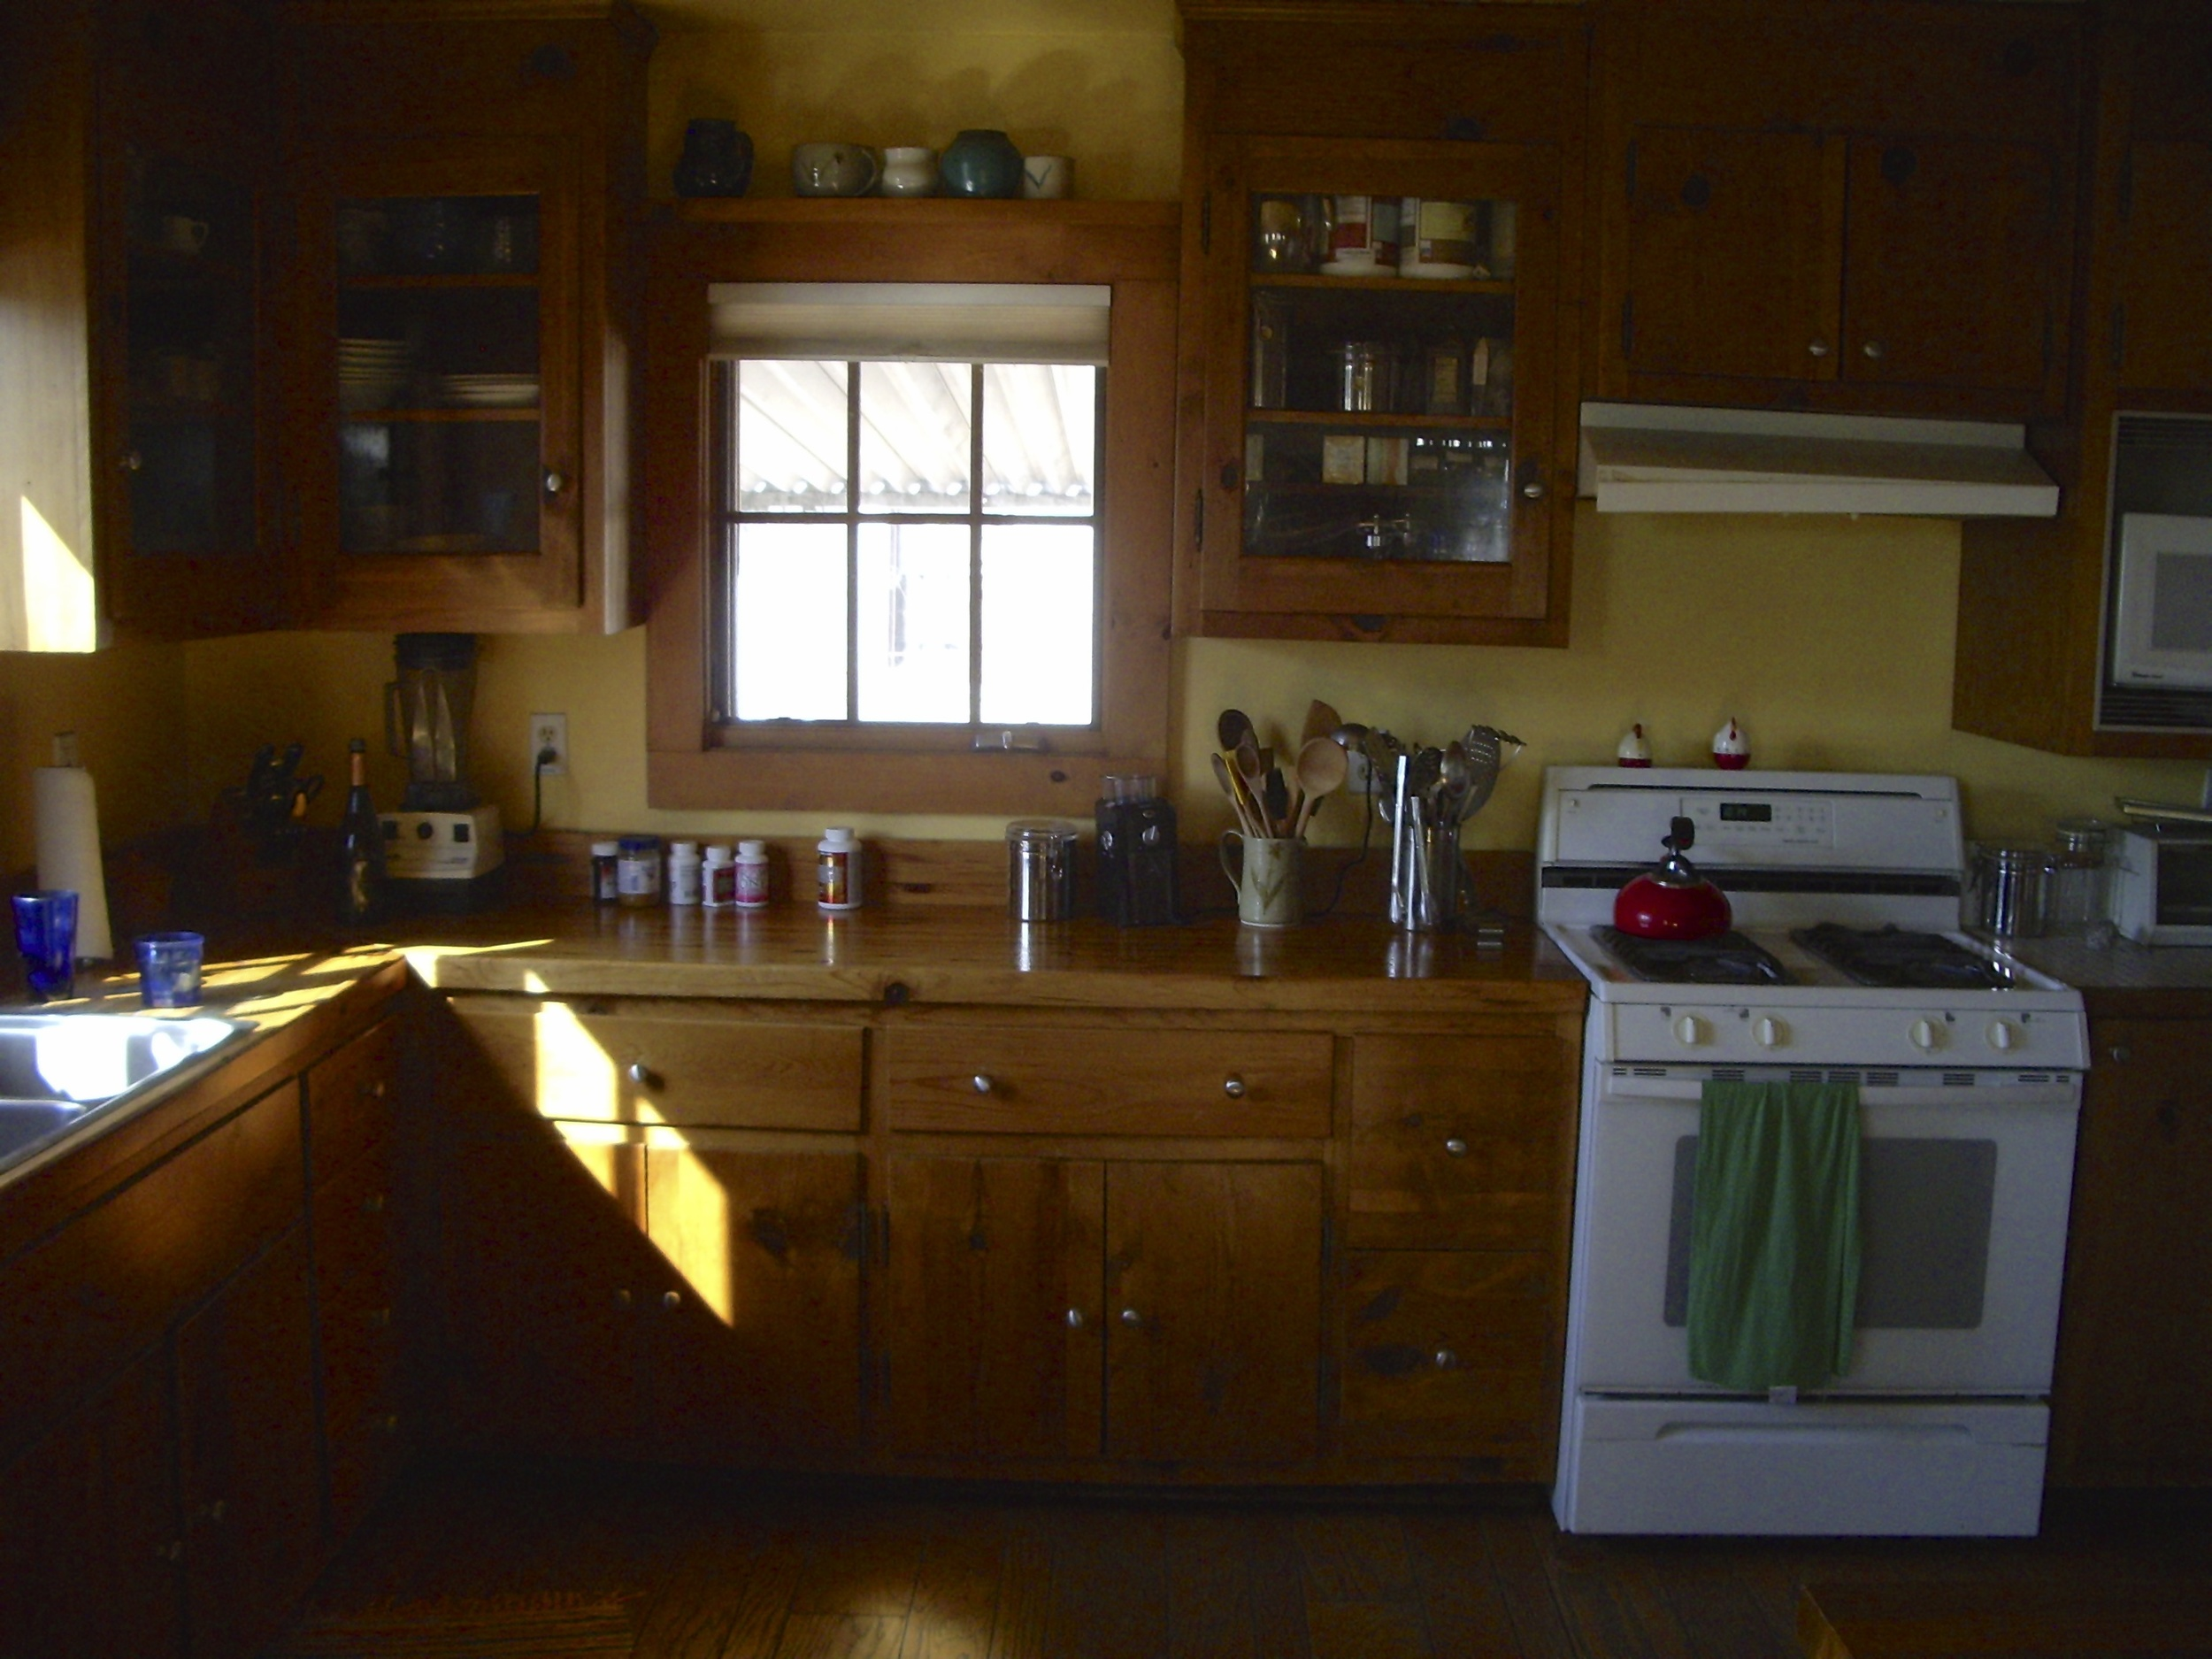 Before: This was a fairly nice kitchen, but was showing some wear. Mainly, it was poorly laid out and didn't utilize the space well. The old cabinets found a new home to go to.